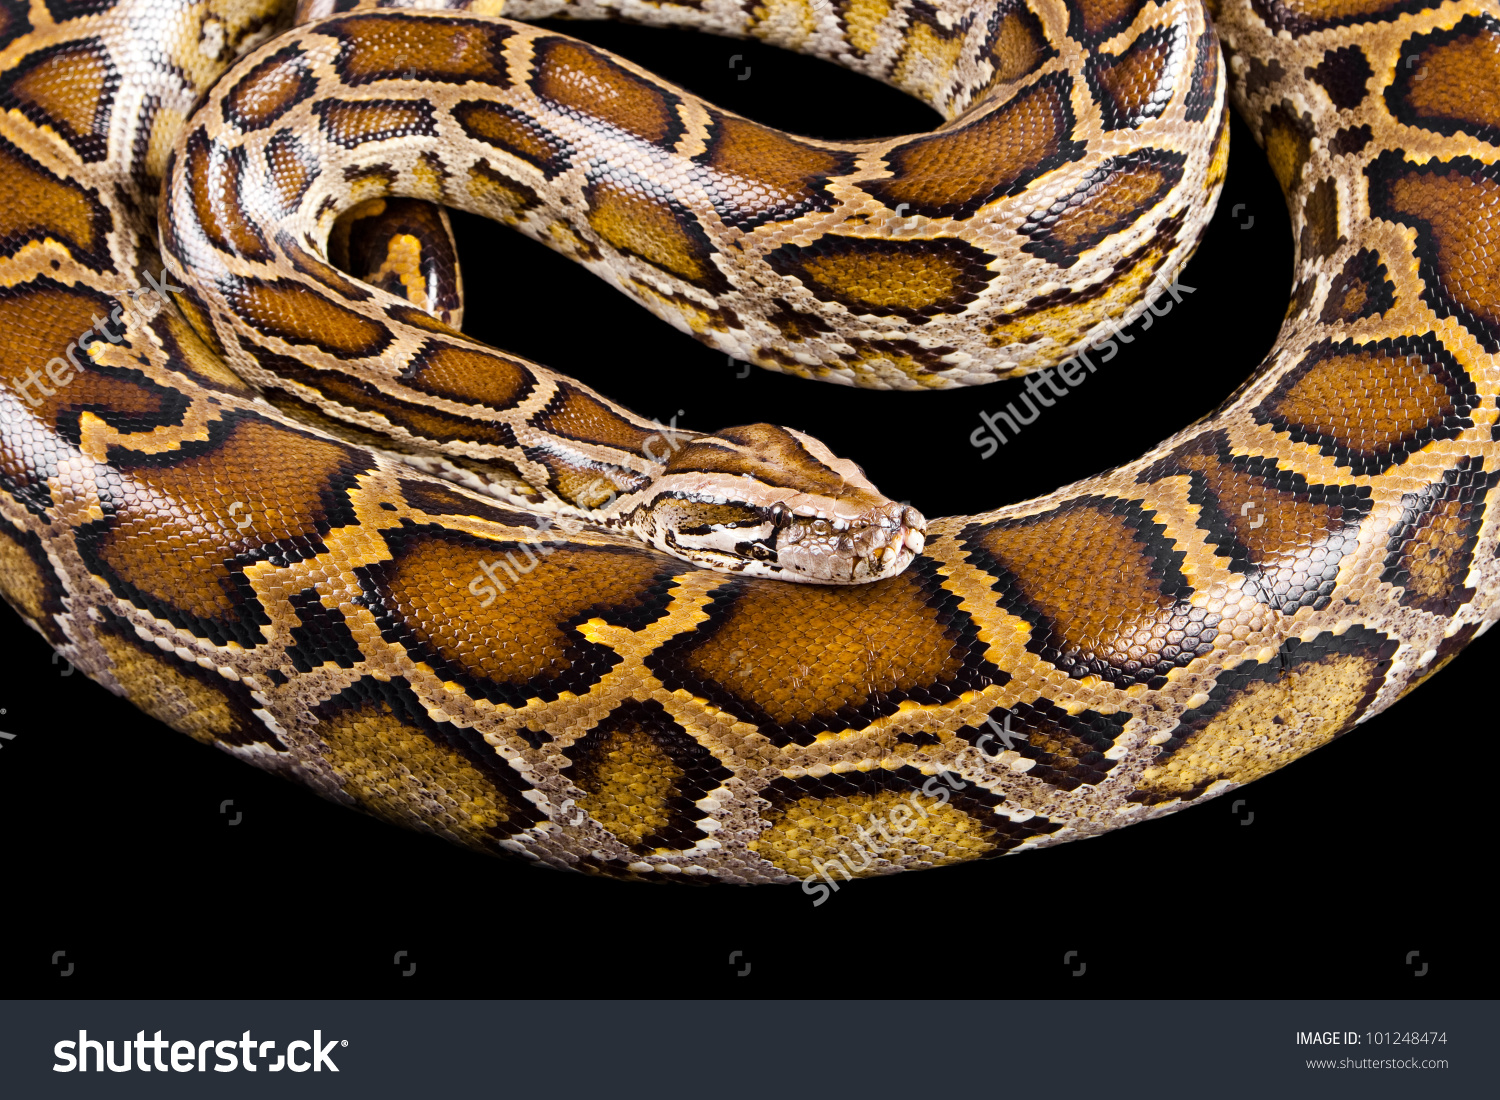 Burmese Python Python Molurus Bivittatus Isolated Stock Photo.